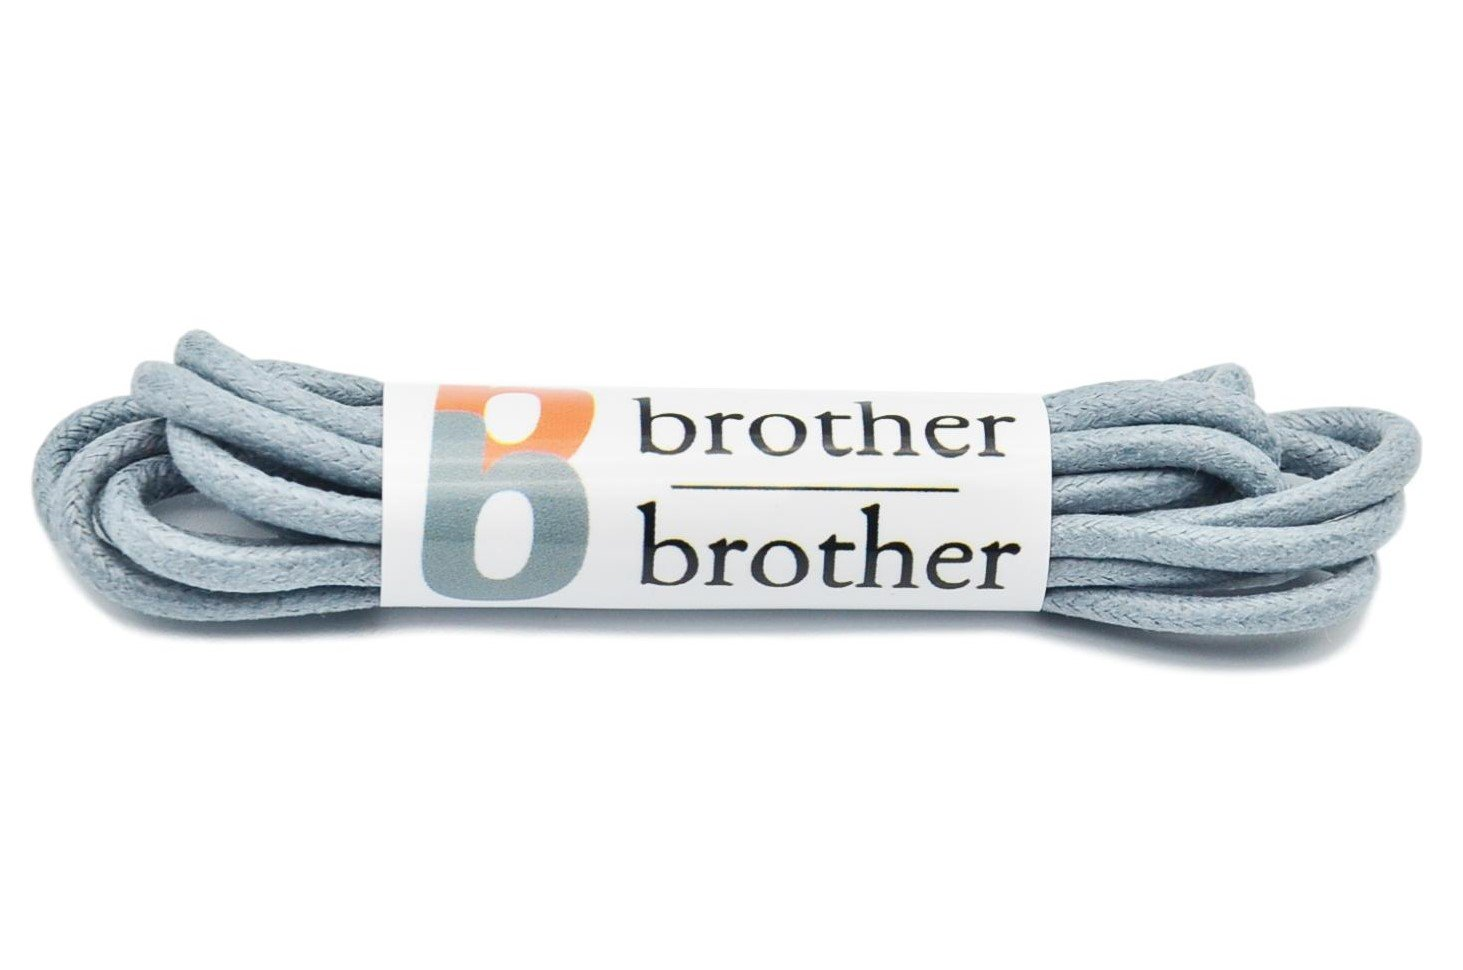 Brother Brother Colored Oxford Shoe Laces for Men (7 Pairs) (30'') by Brother Brother (Image #8)